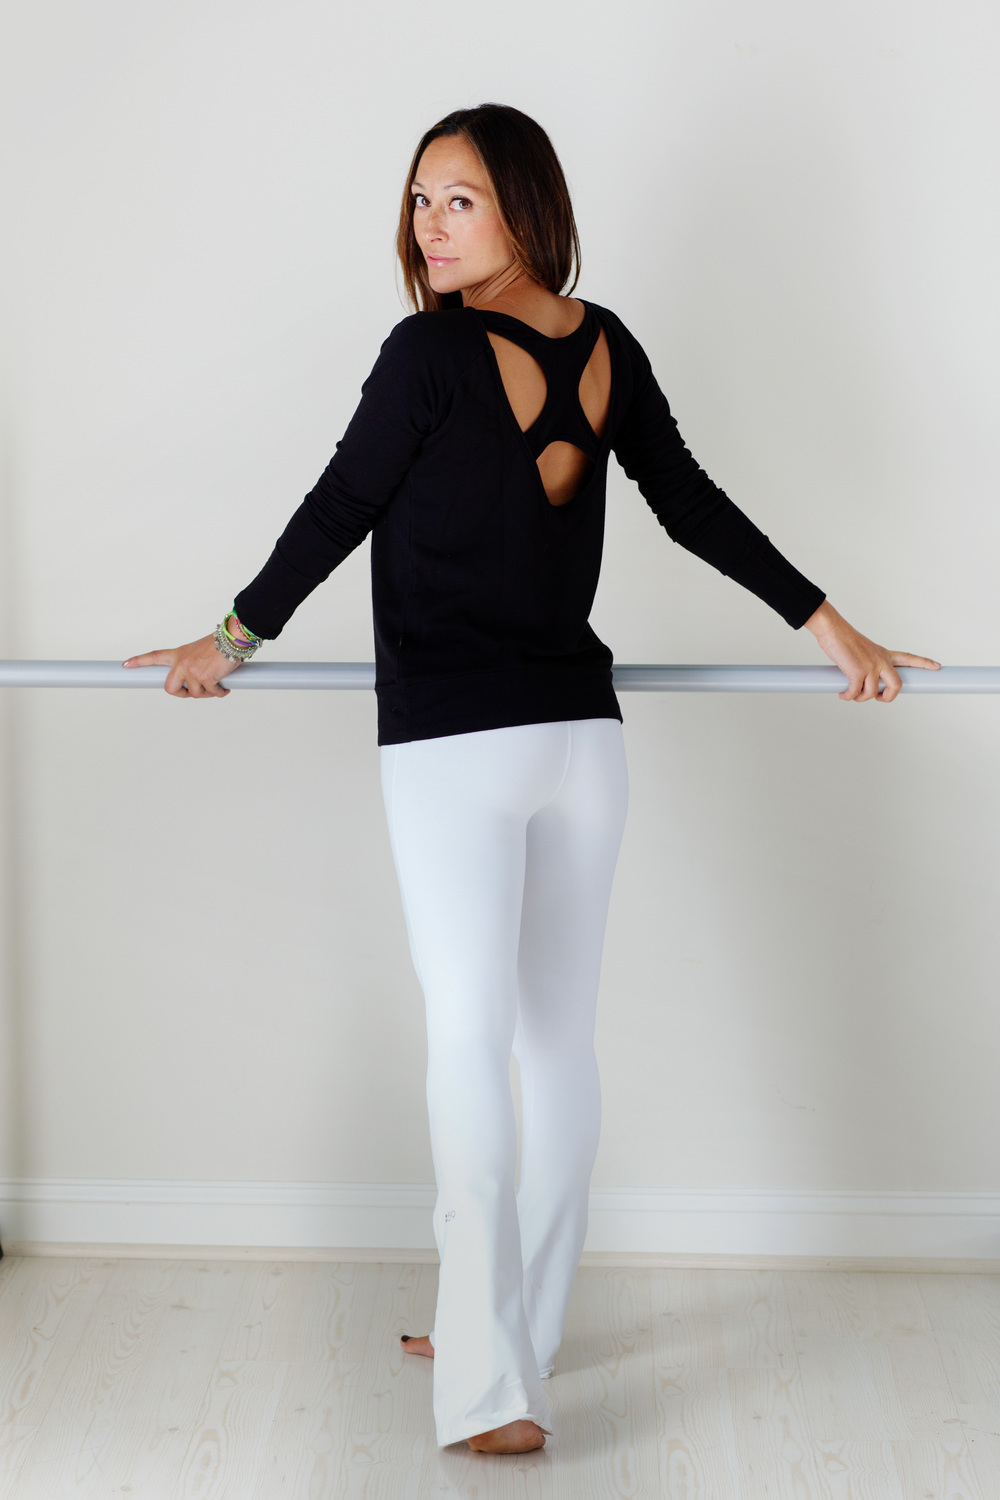 Me Pre-Surgery. I am so going to rock these white Splits59 Raquel tights again!